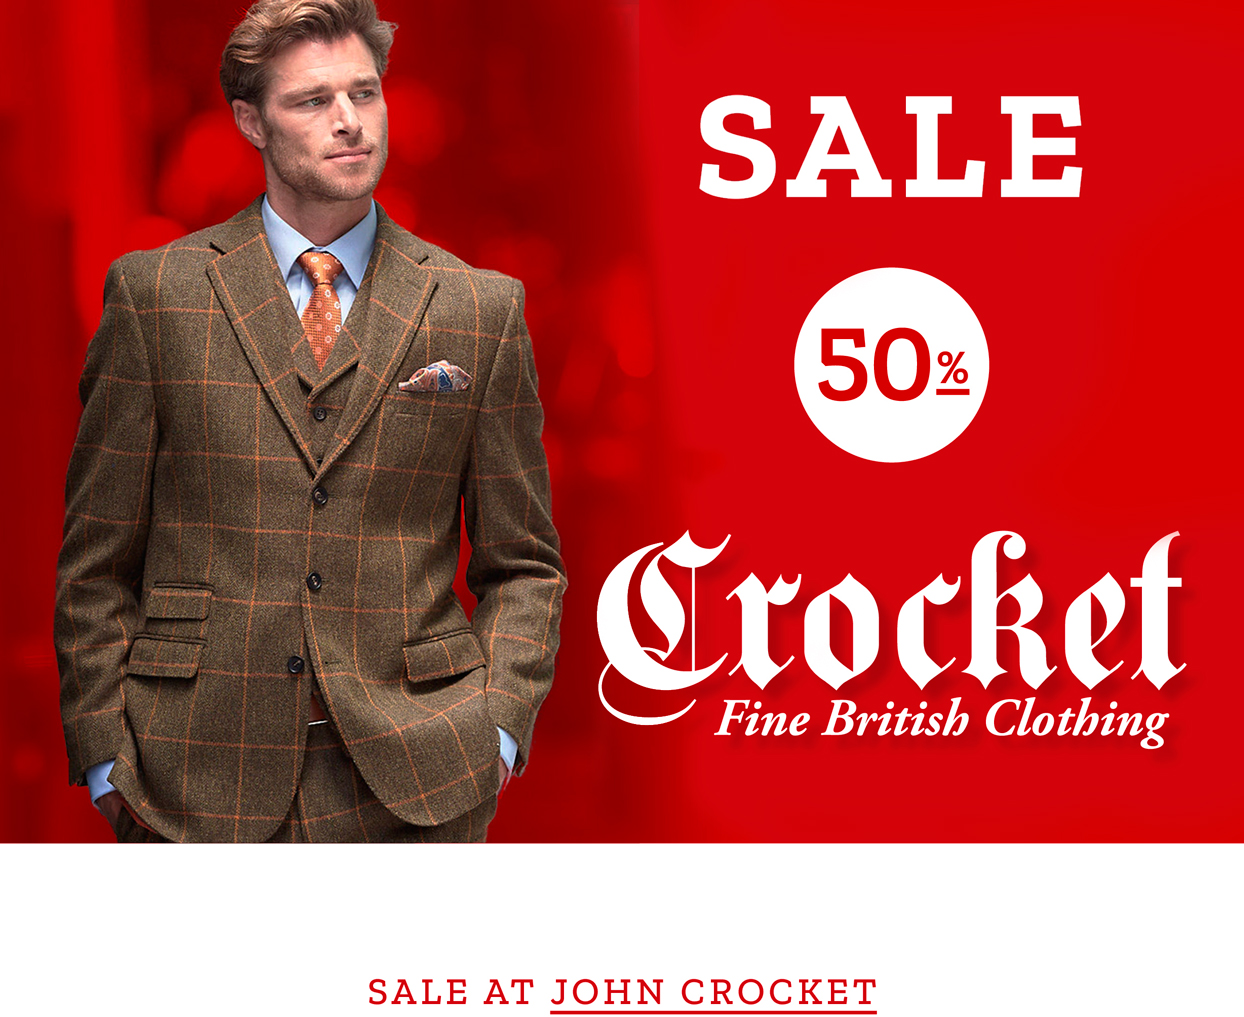 John Crocket – Fine British Clothing